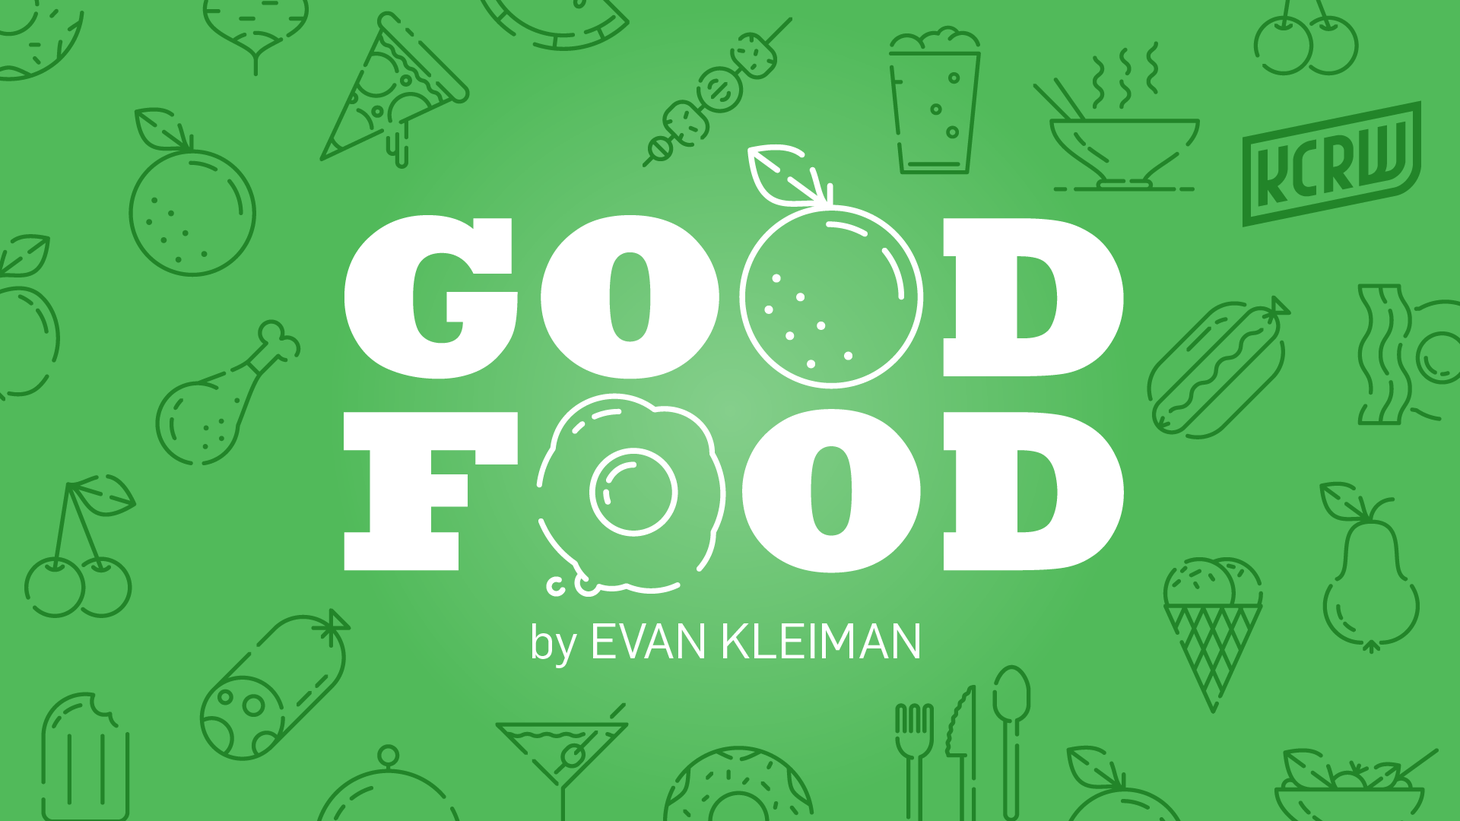 This Saturday on Good Food, host Evan Kleiman prepares us for the build up for the nation's great eating day - Thanksgiving.  We'll have a primer on turkey cooking with Fine Cooking's Abby Dodge. We'll talk about enjoying a cheese plate with Norbert Wabnig of The Cheese Store  and then give you some tips on avoiding gluttony with nutrition expert Jackie Keller.  And a tribute to the legendary hosts of Thanksgiving -- the Native Americans.